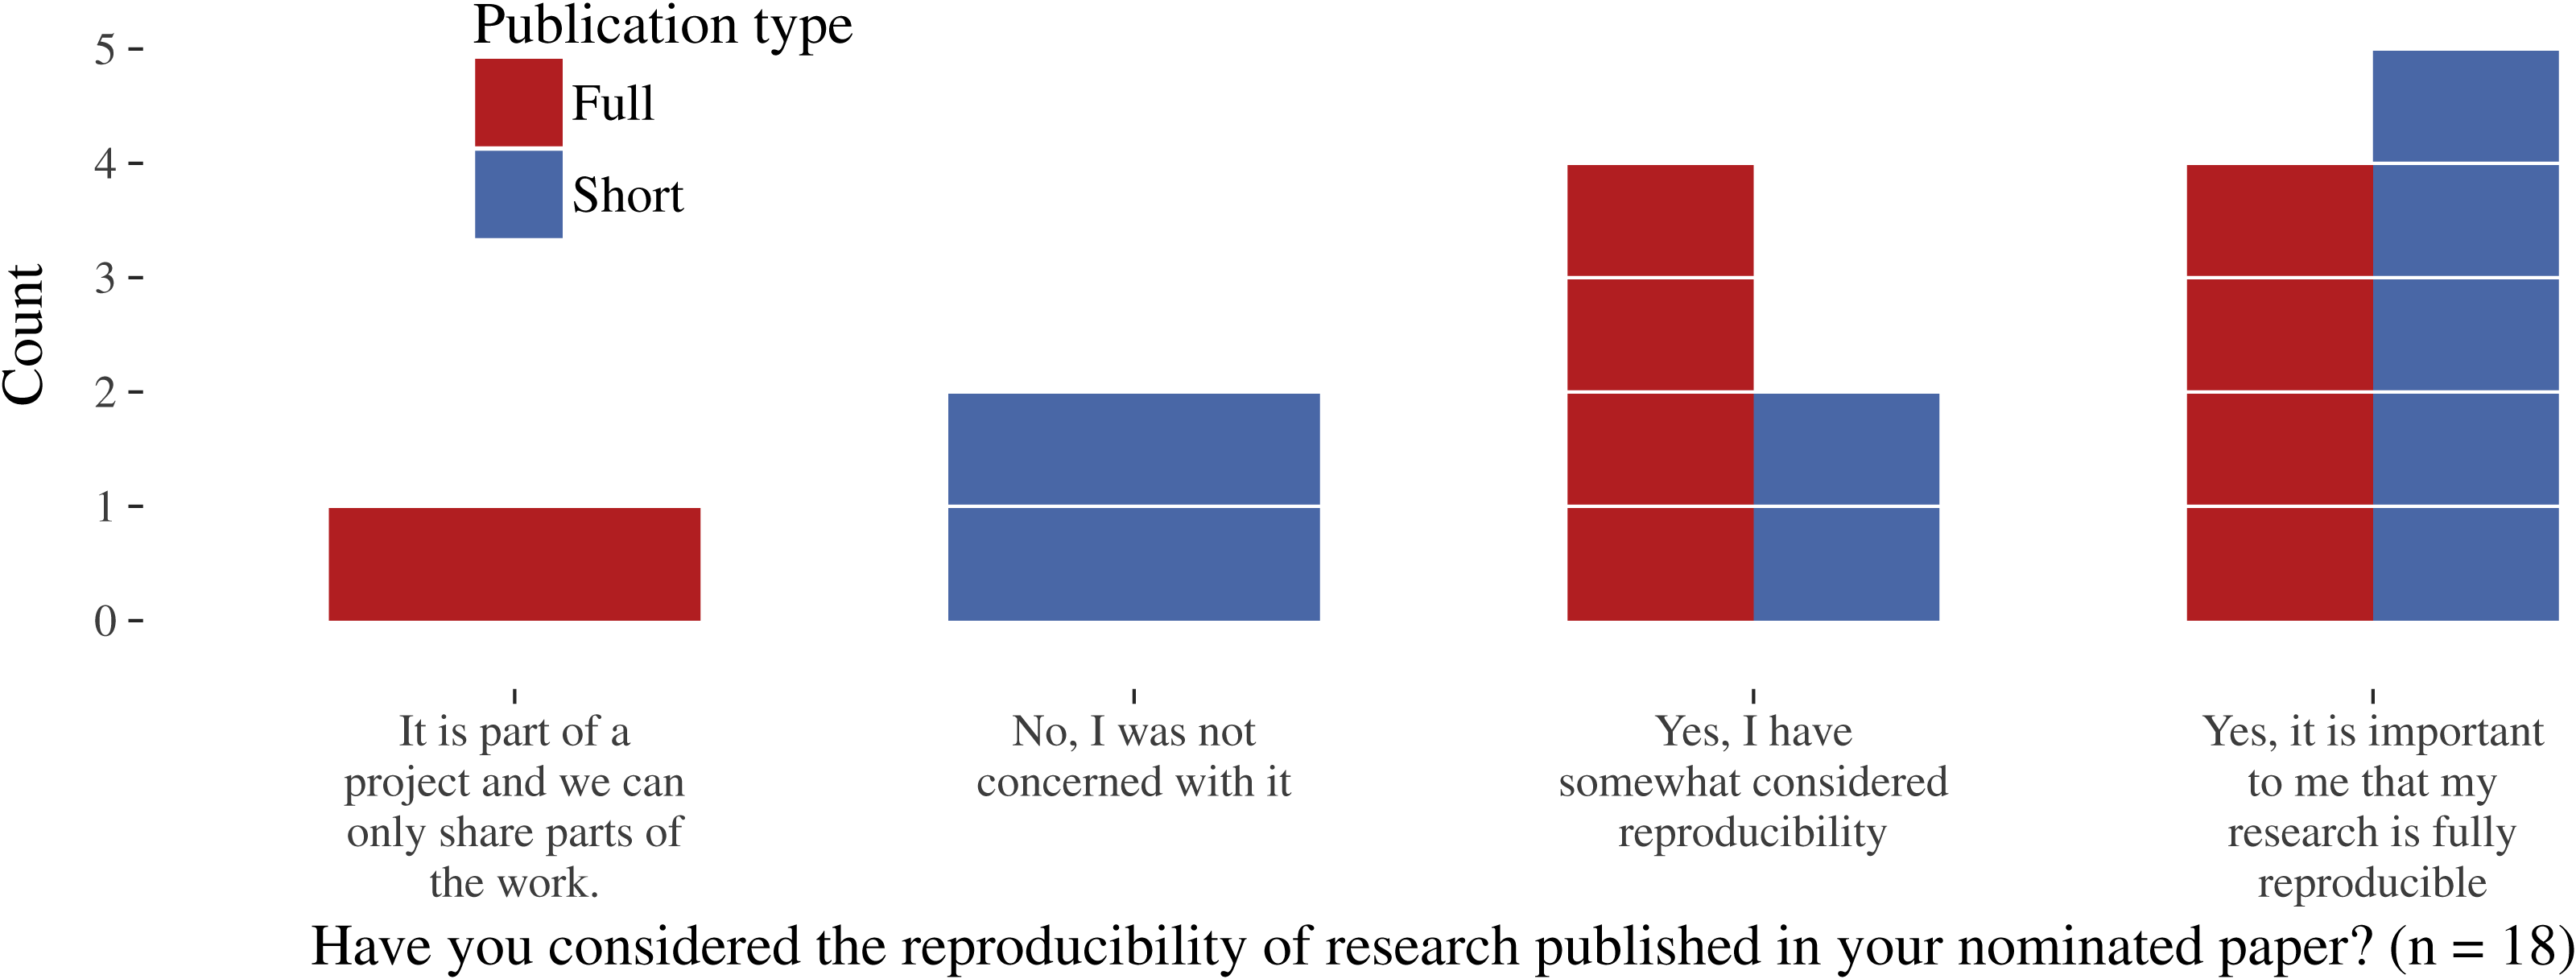 Reproducible research and GIScience: an evaluation using